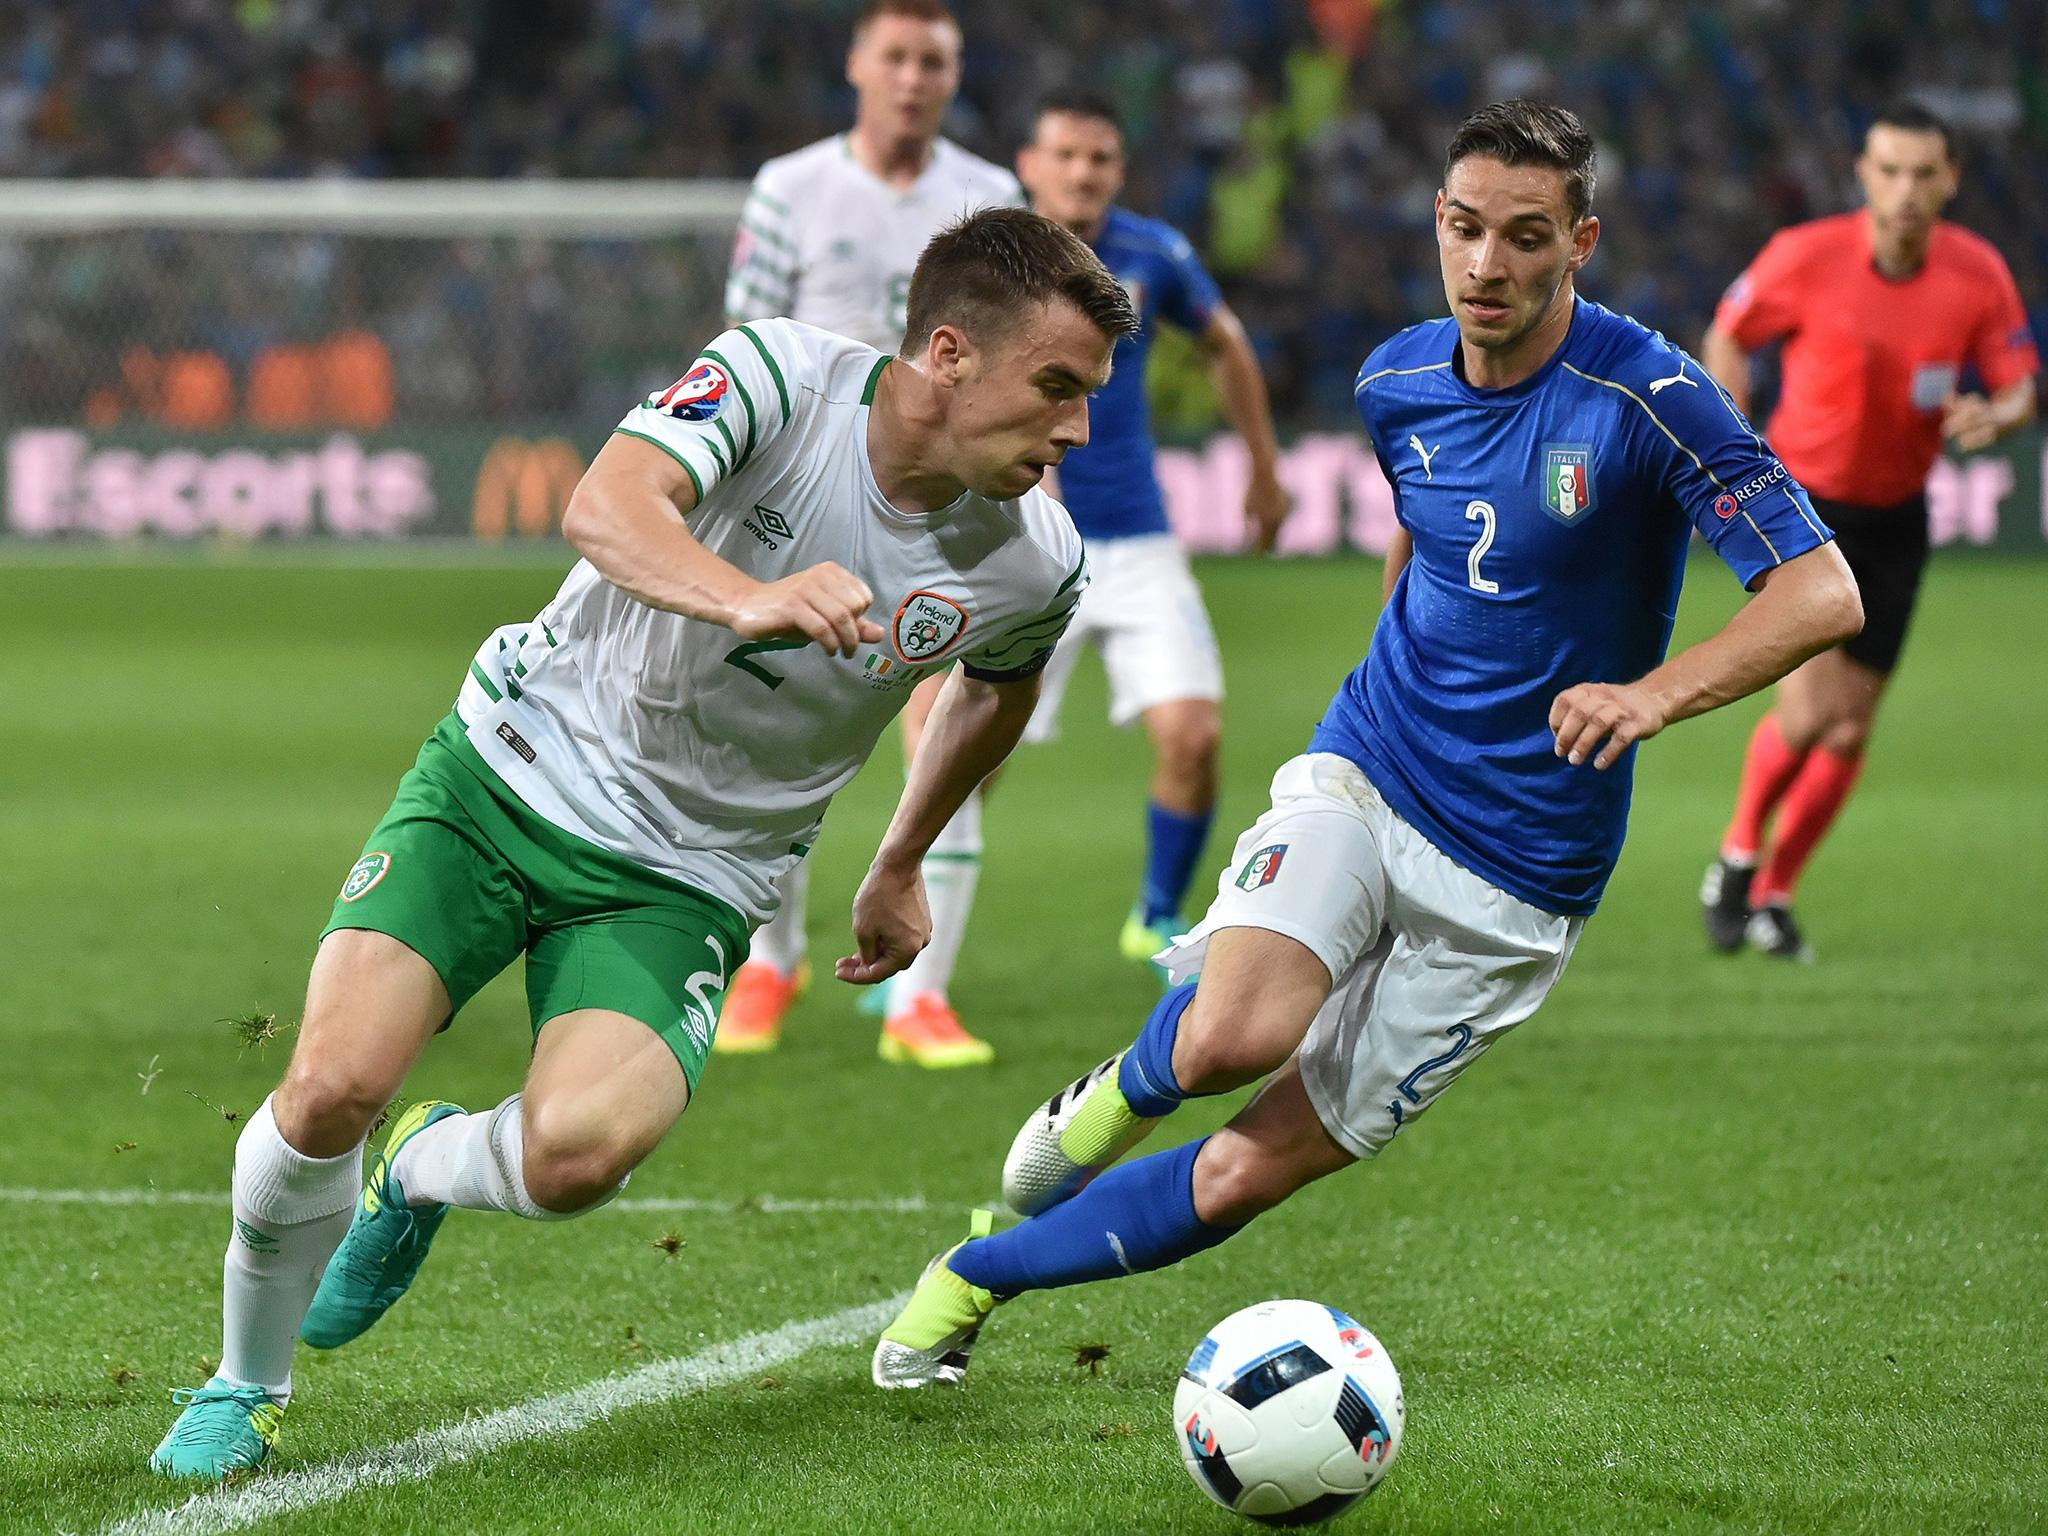 italy vs republic of ireland euro 2016 live latest score and updates after robbie brady late. Black Bedroom Furniture Sets. Home Design Ideas